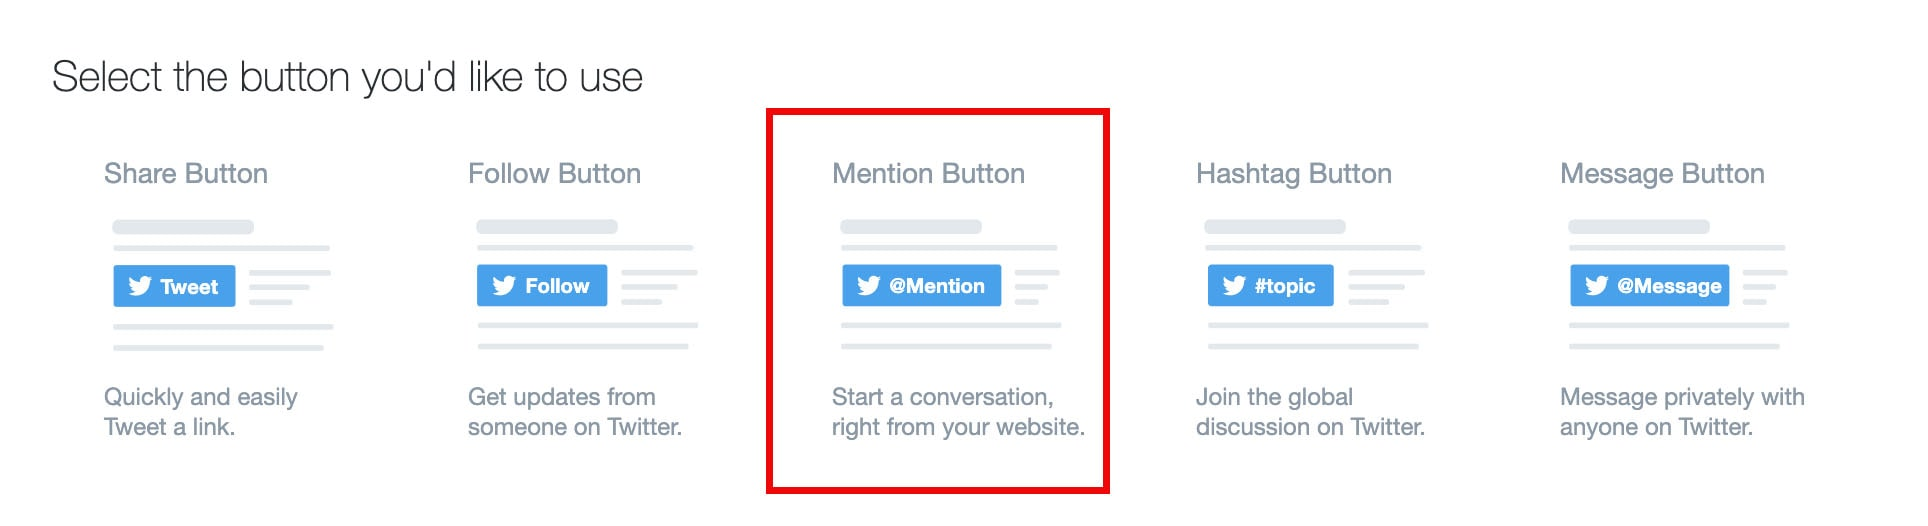 mention button on twitter's developer website